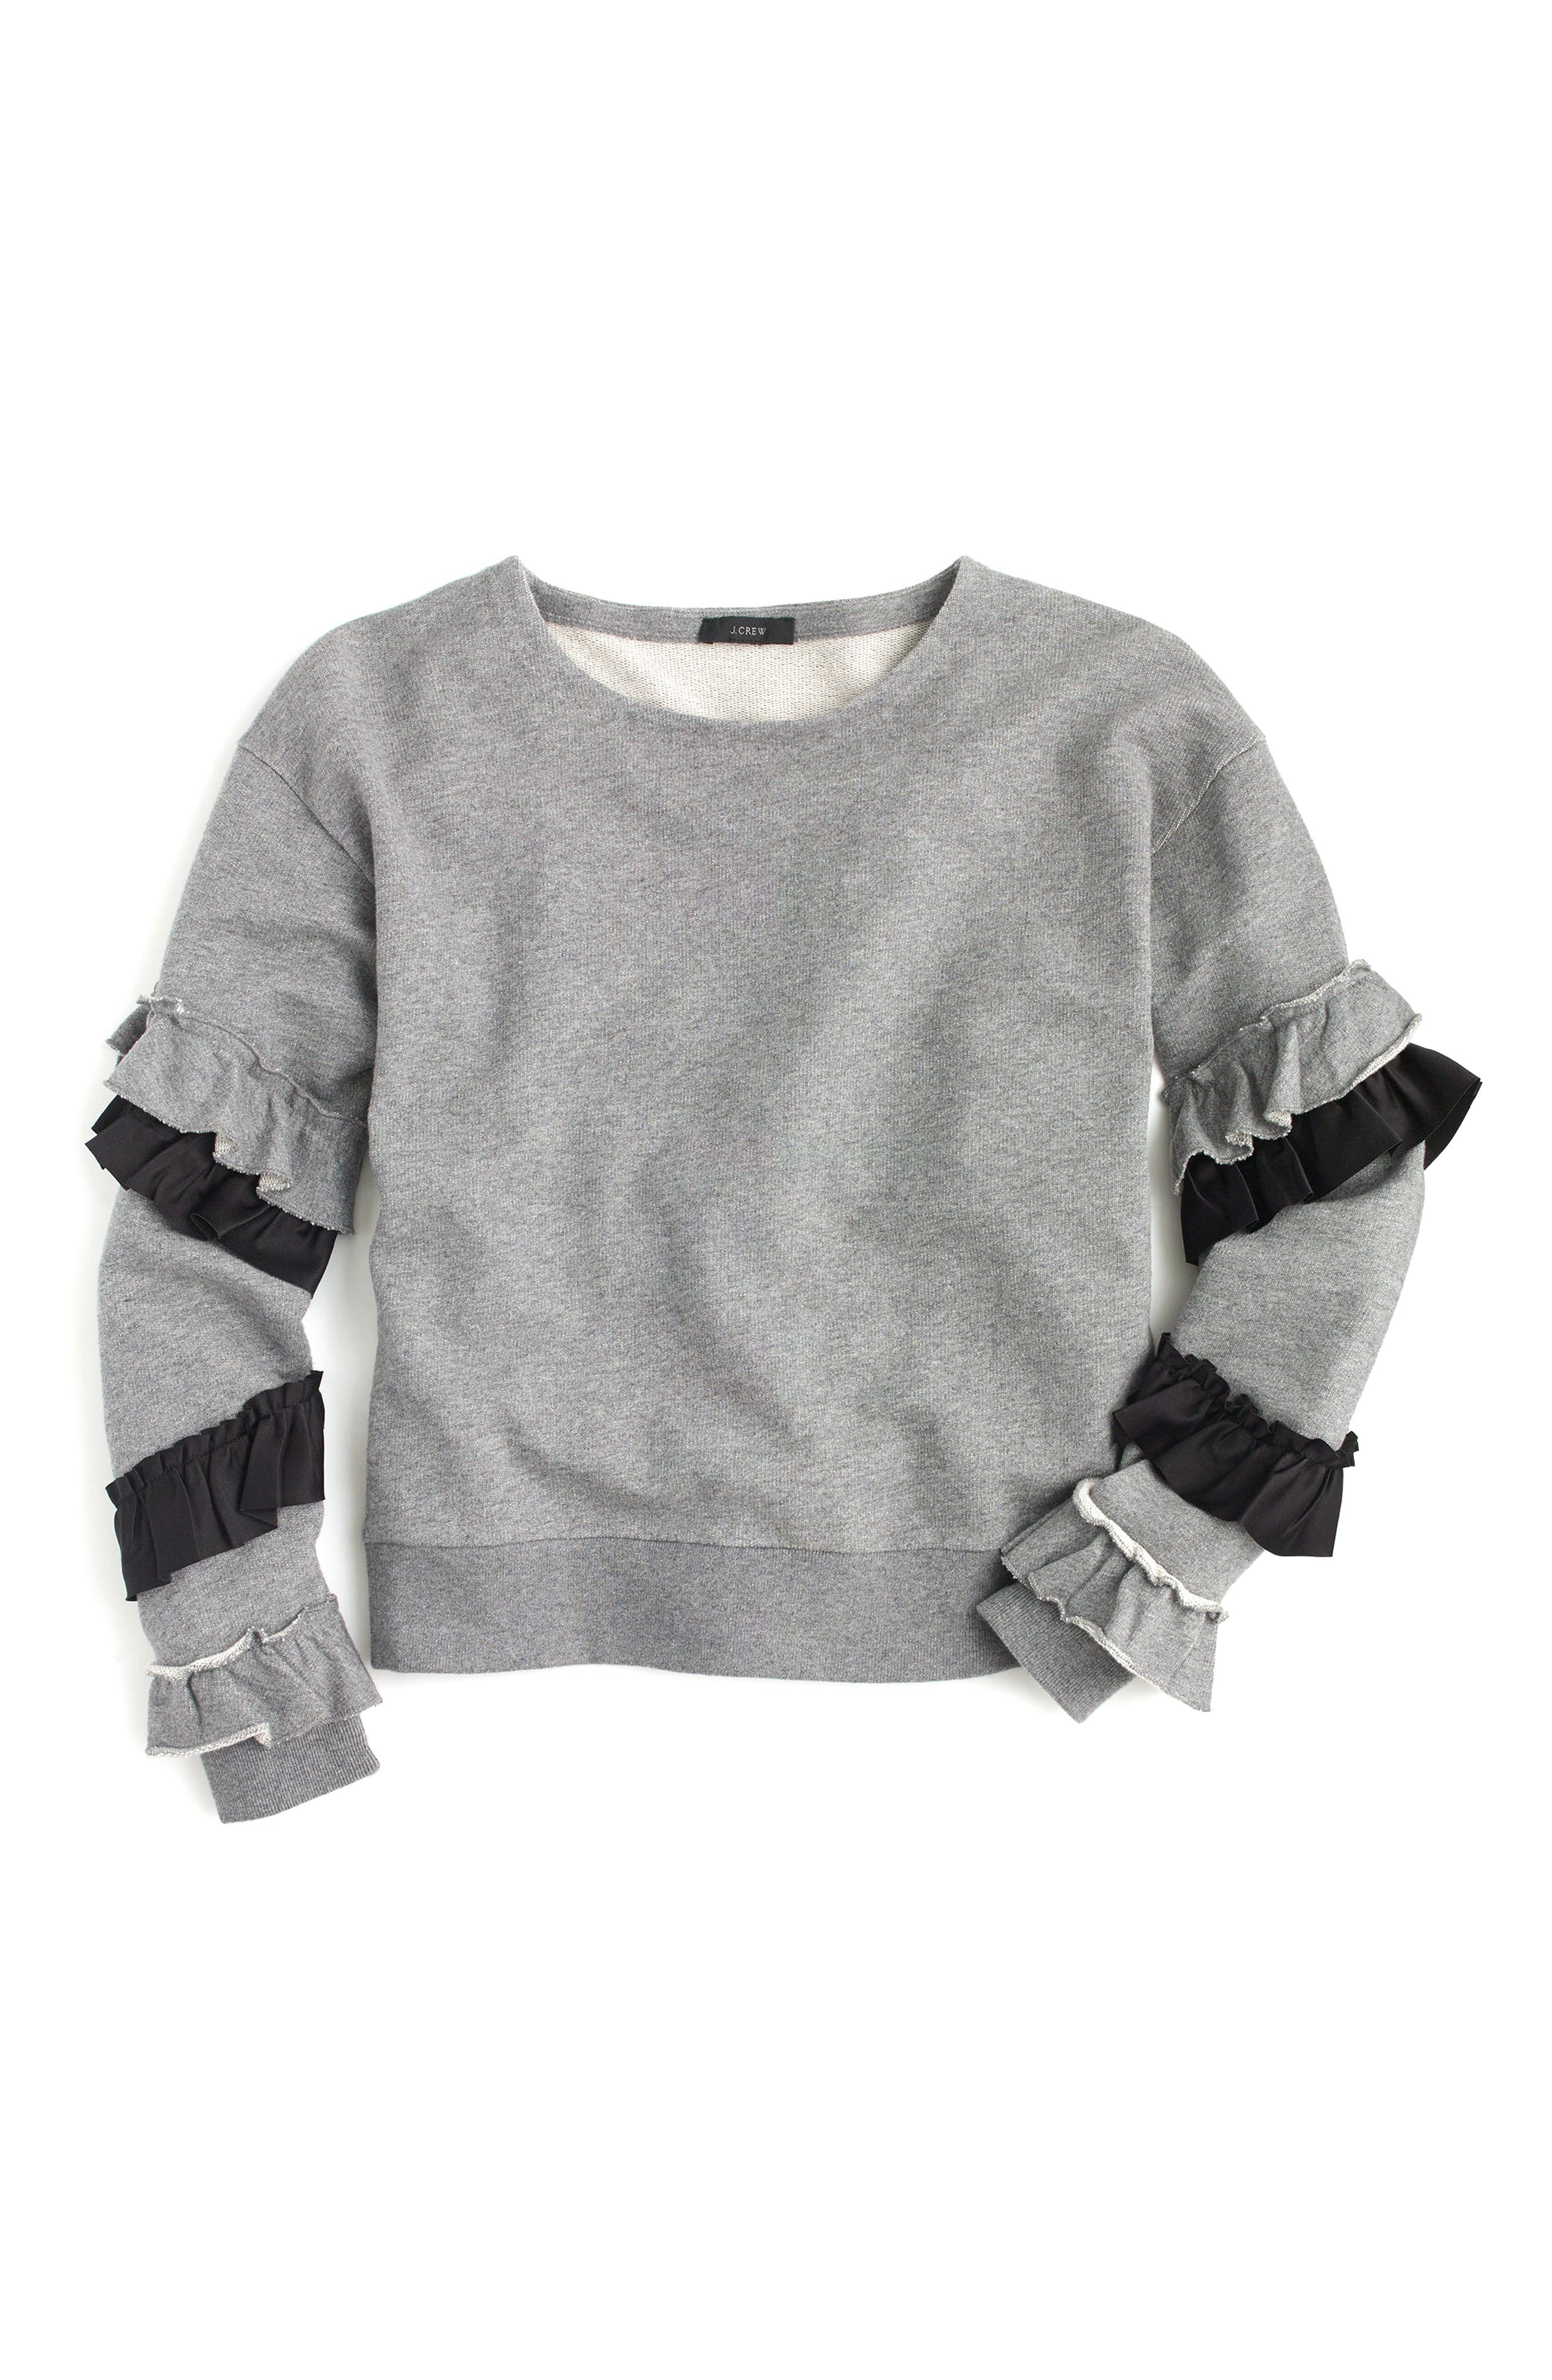 Ruffle Sleeve Sweatshirt,                             Alternate thumbnail 3, color,                             090